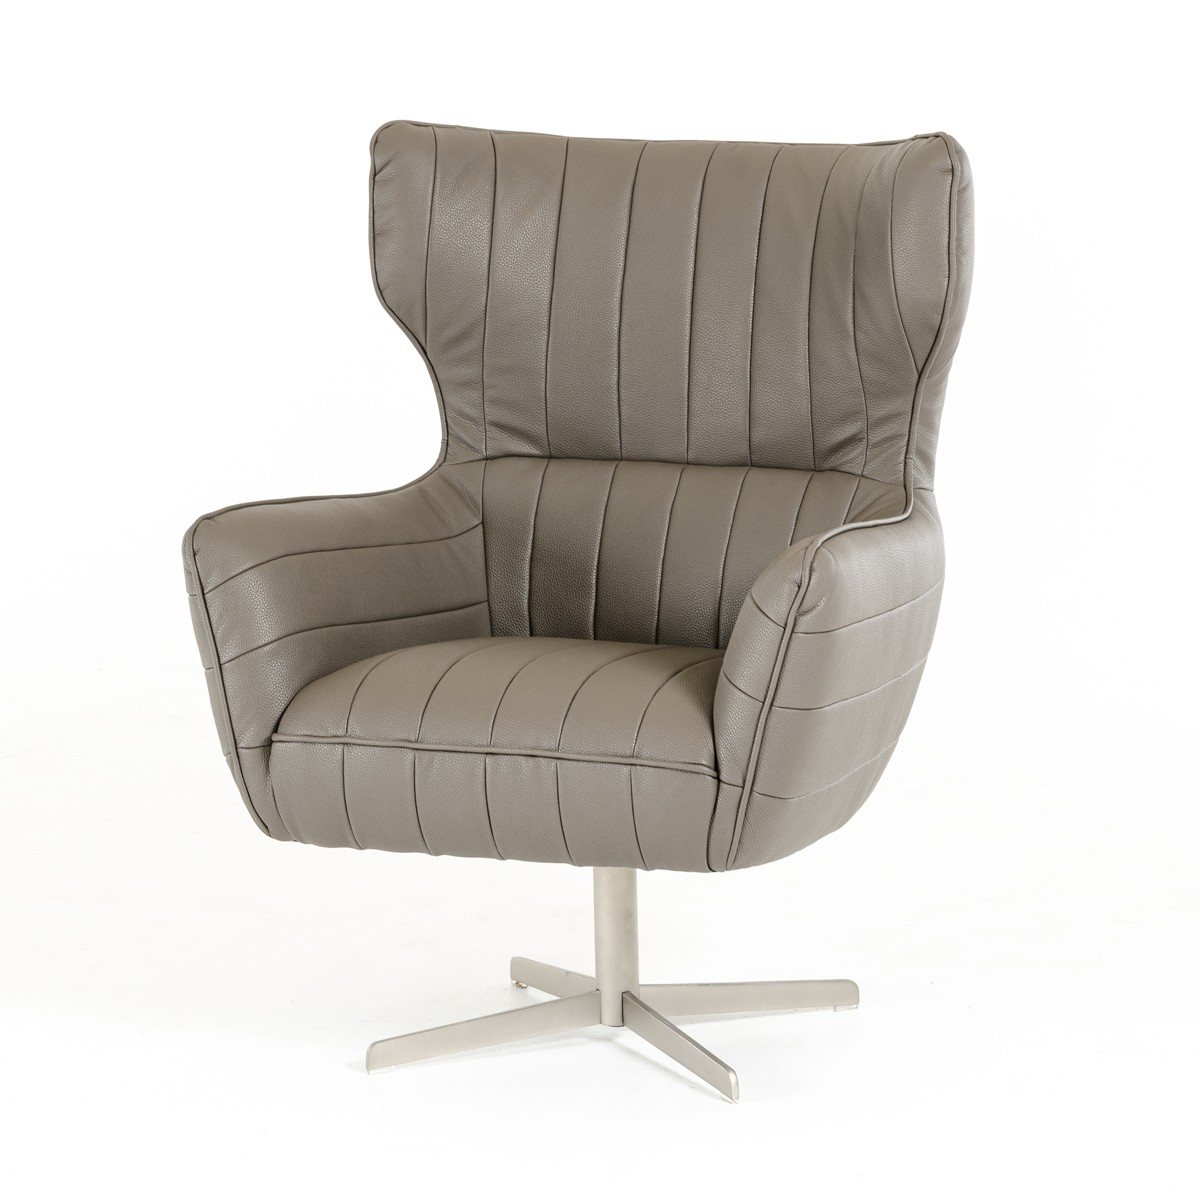 Grey Leather Club Chair Grey Leather Swivel Accent Chair With Tufting El Paso